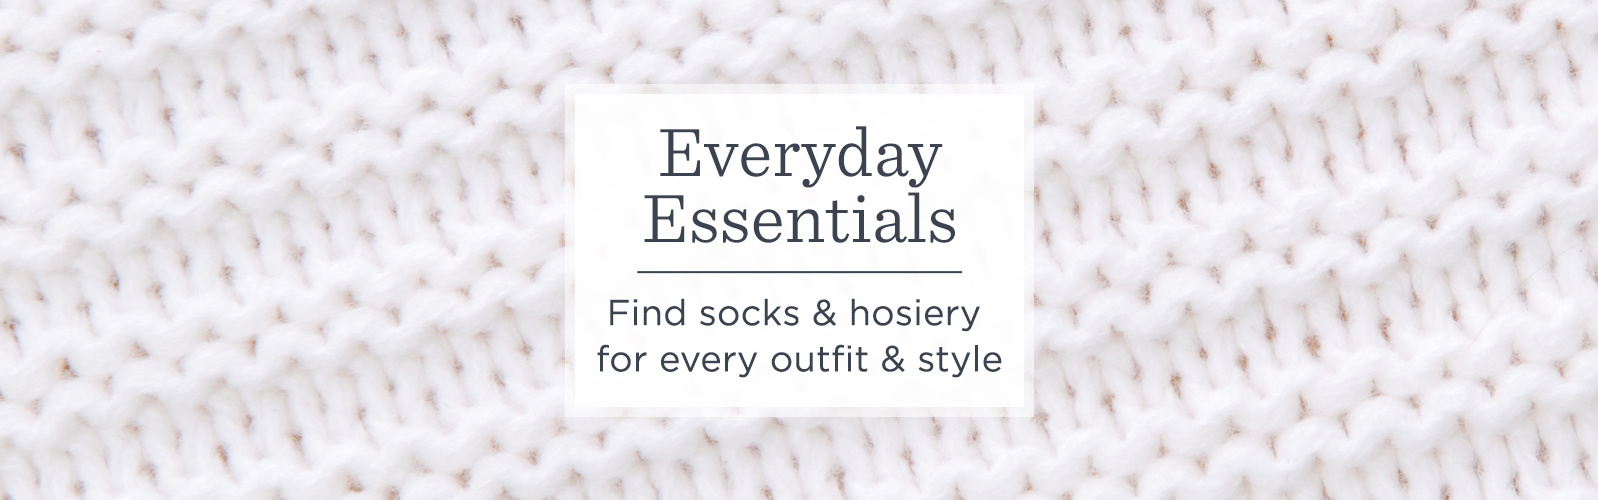 Everyday Essentials. Find socks & hosiery for every outfit & style